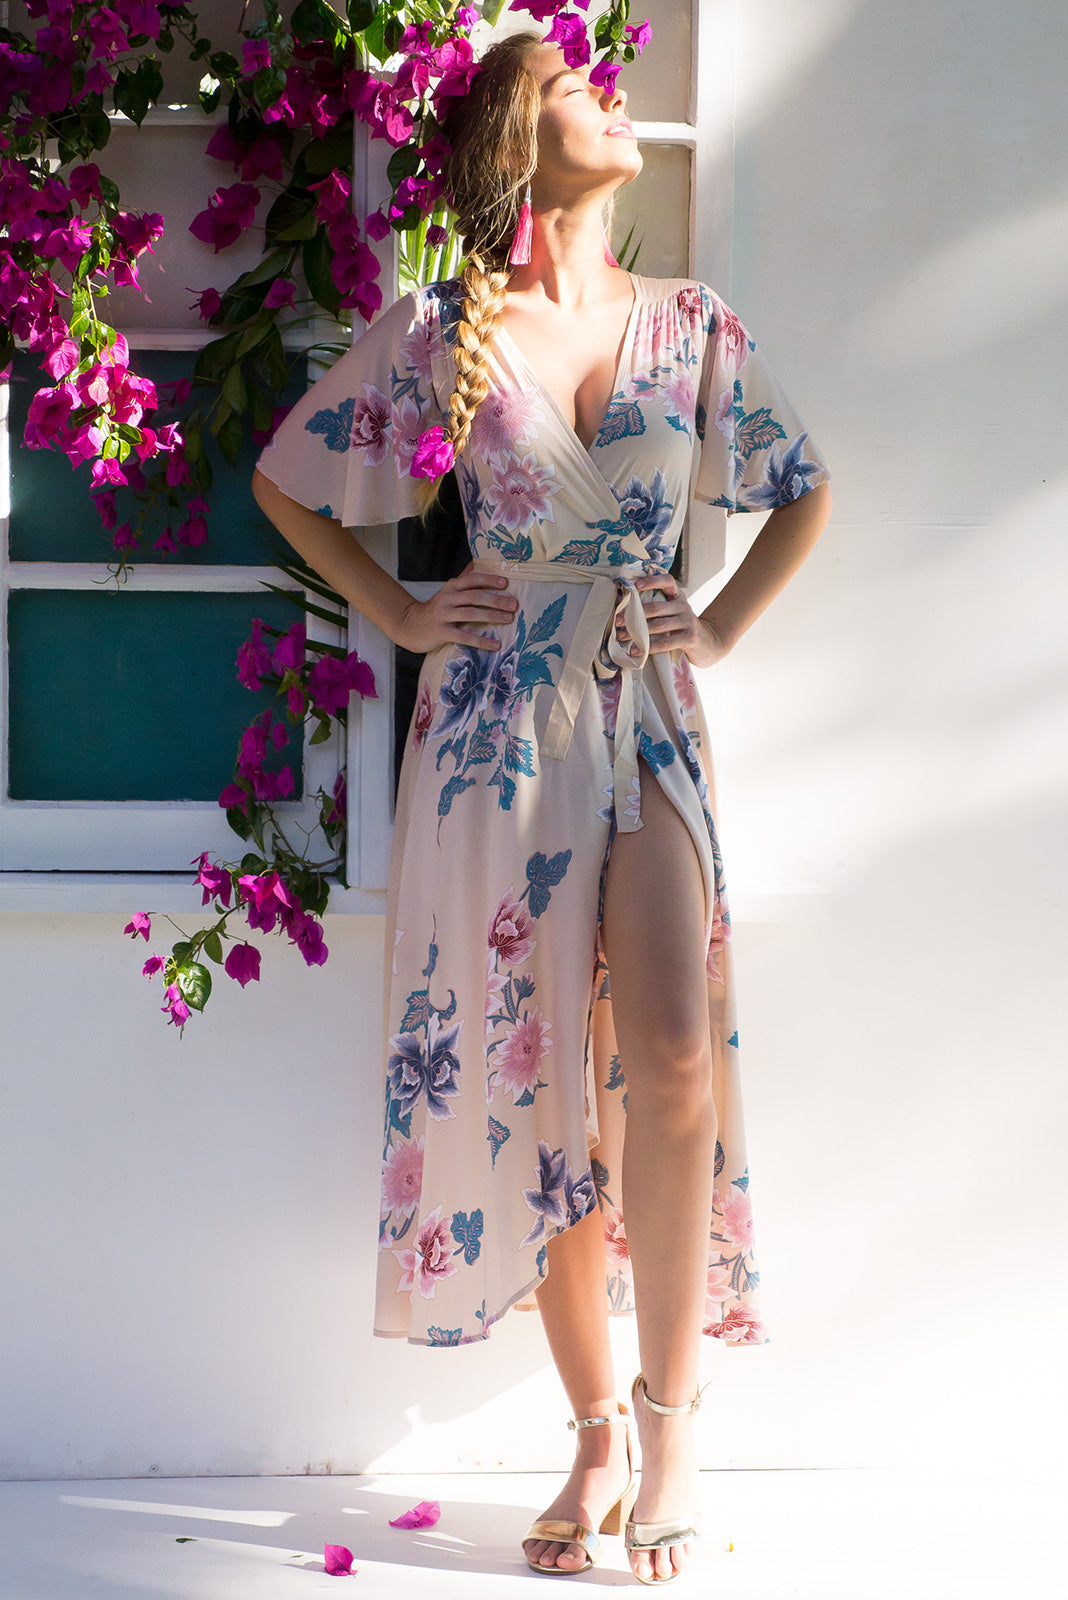 Petal Carito Cream Maxi Wrap dress with flutter sleeves and soft cream based floral print on rayon fabric, wraparound dress, plus size fashion